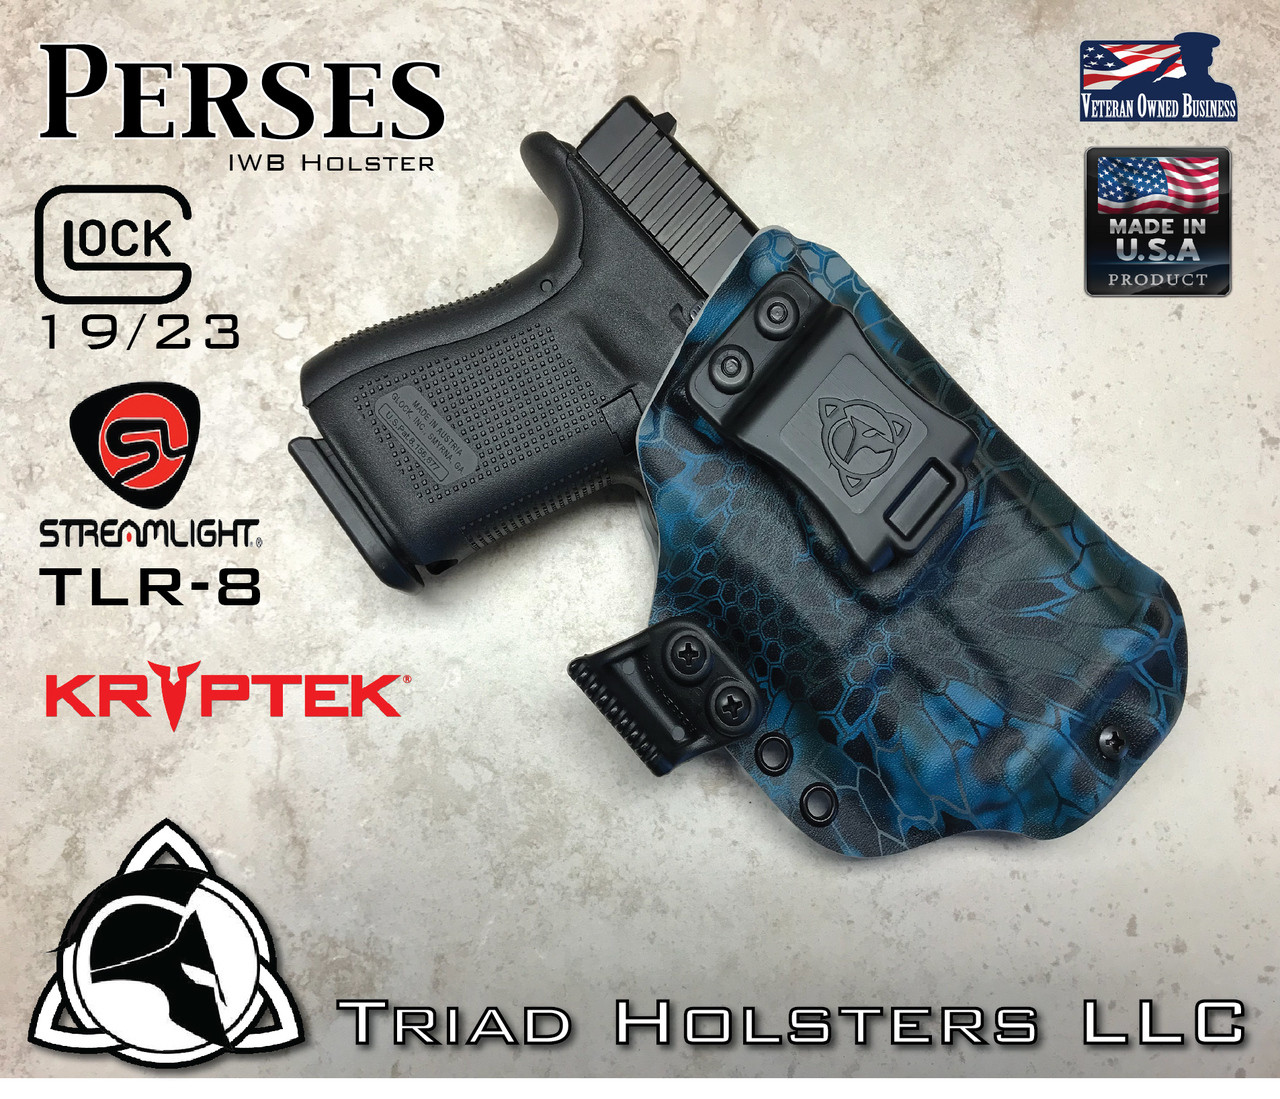 Kydex Holster Glock 19/23 and Streamlight TLR-8 Perses IWB Inside the  Waistband